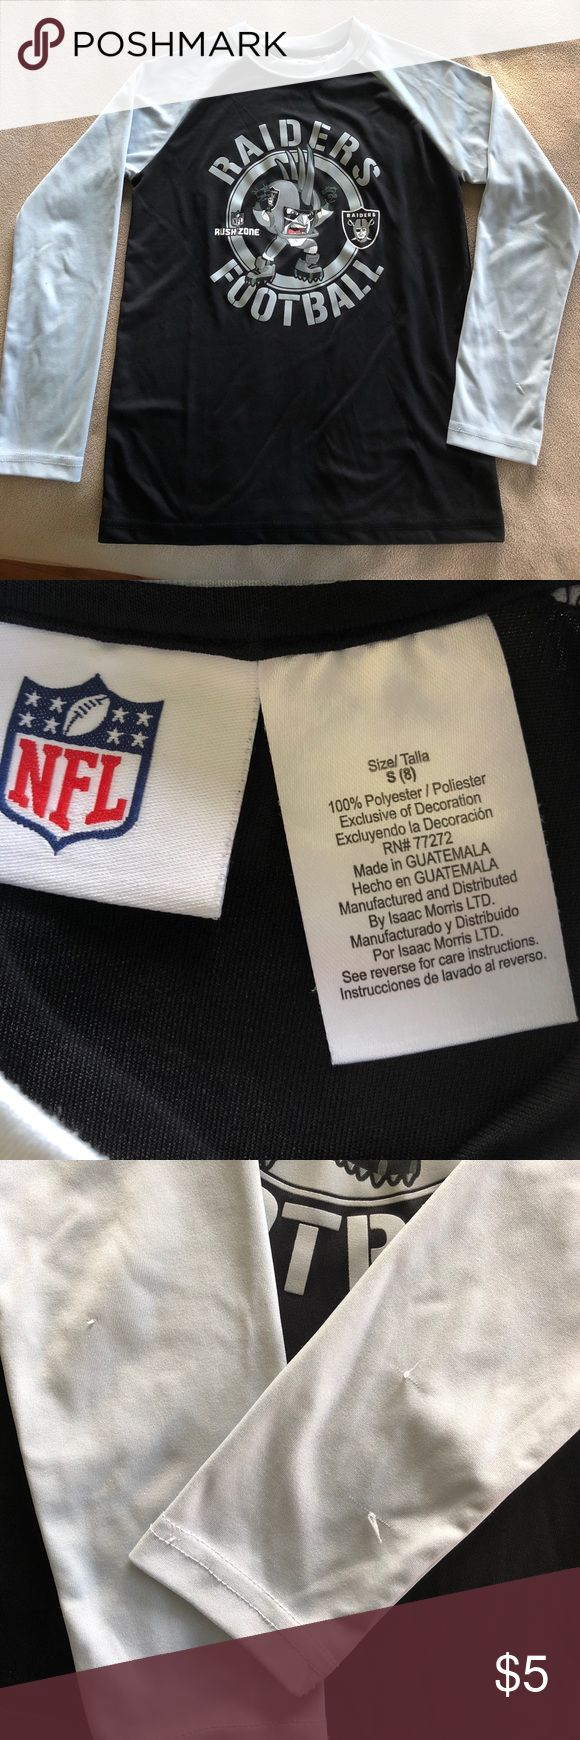 NFL Raiders long sleeve tee 100% polyester. Youth size S(8). Only wore handful times. But there're several snagged spots as shown on 3rd pic. NFL Shirts & Tops Tees - Long Sleeve